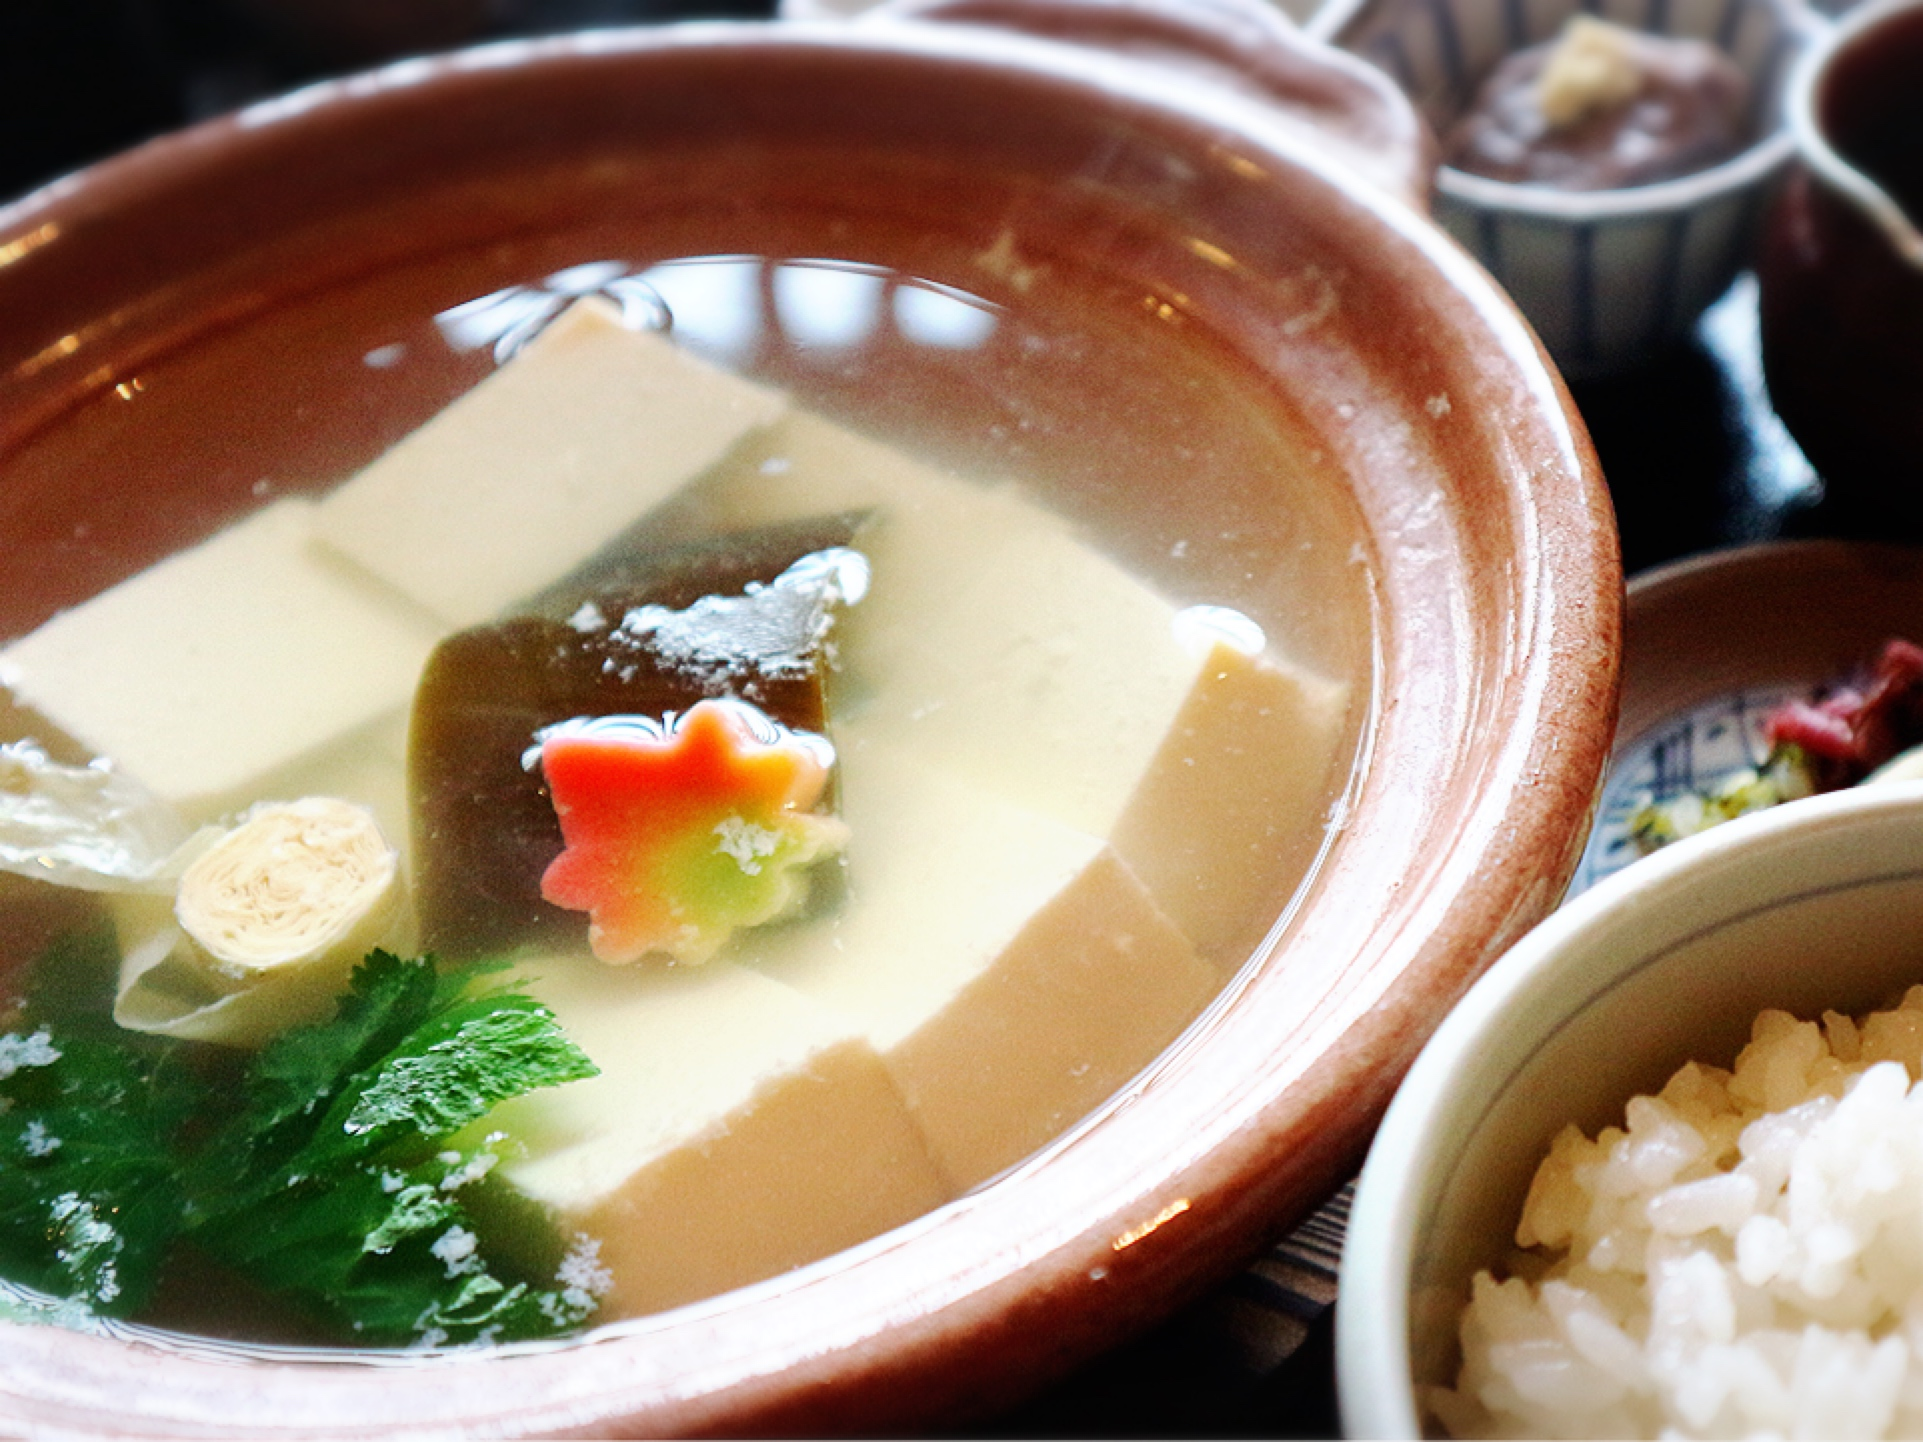 The best foods to try in Kyoto! Delicious dishes with refined and delicate Kyoto flavors